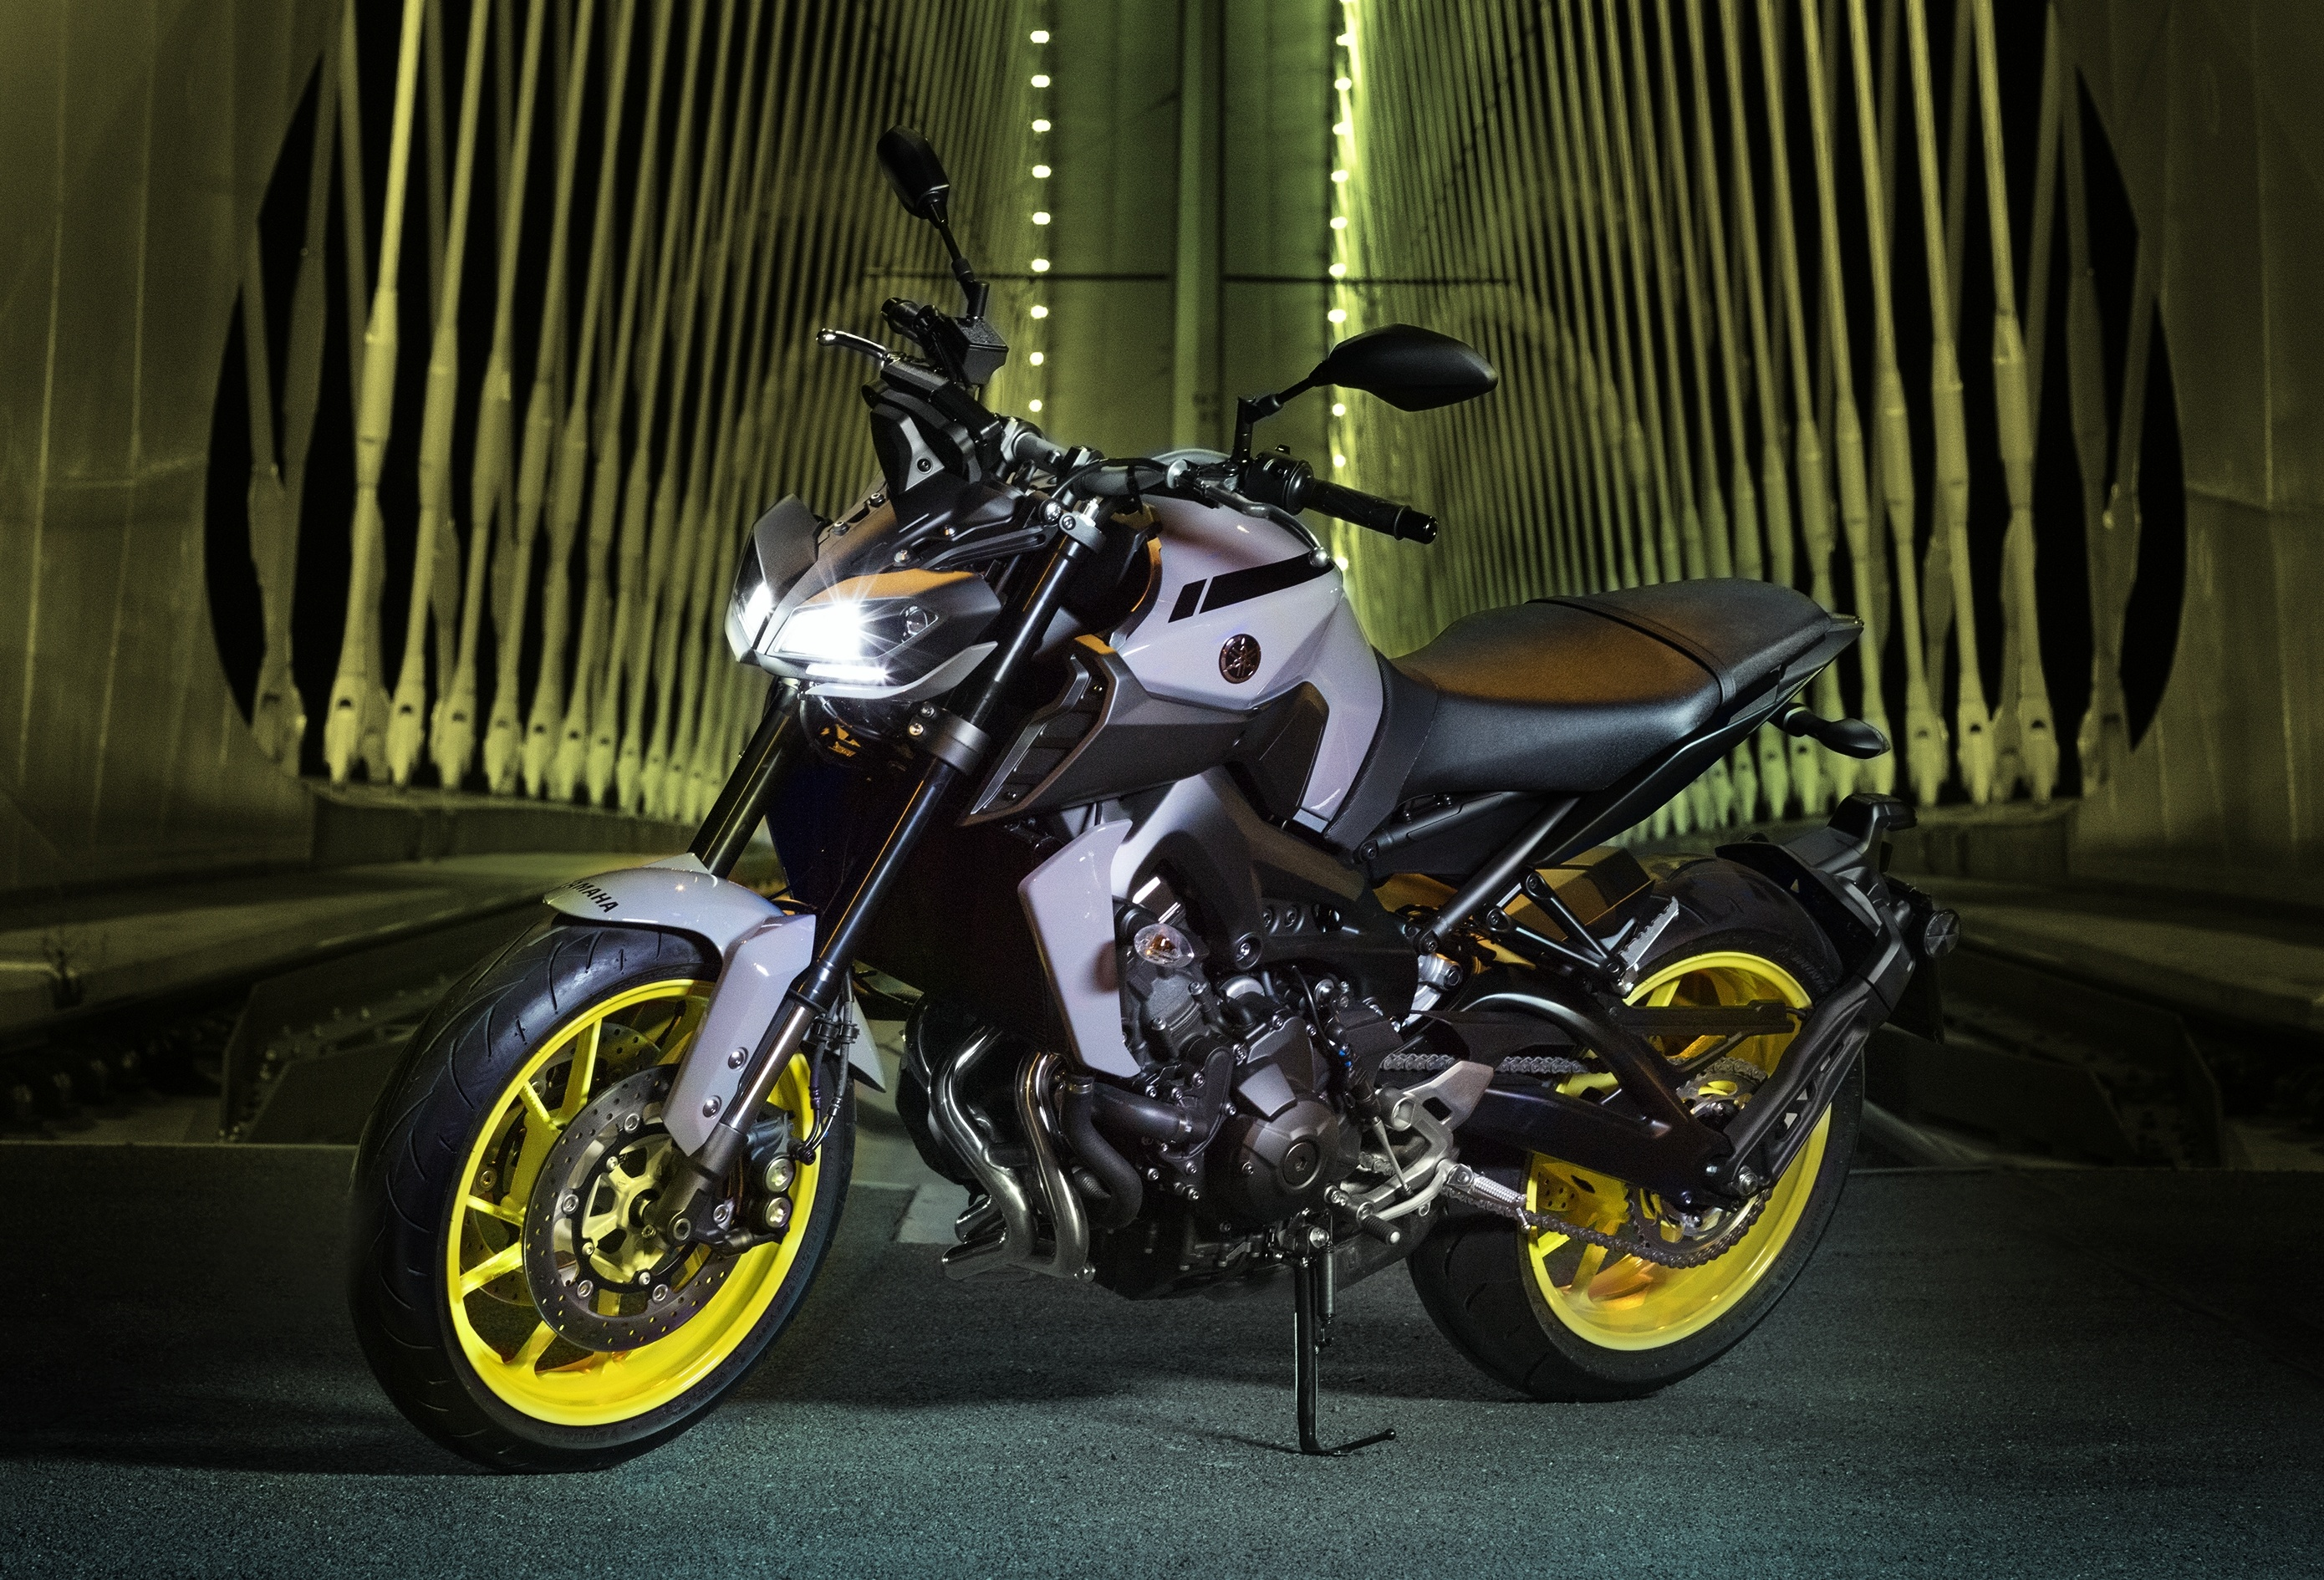 2017 Yamaha Mt 09 Updated For The New Year Now With Led Headlights And Quickshifter additionally Gsx 1100 1980 moreover 2016 Teryx LE likewise Ford escort a1242028802b2680561 5 p likewise Z0DC7VE5RE0616Z9. on 4 cylinder model engine